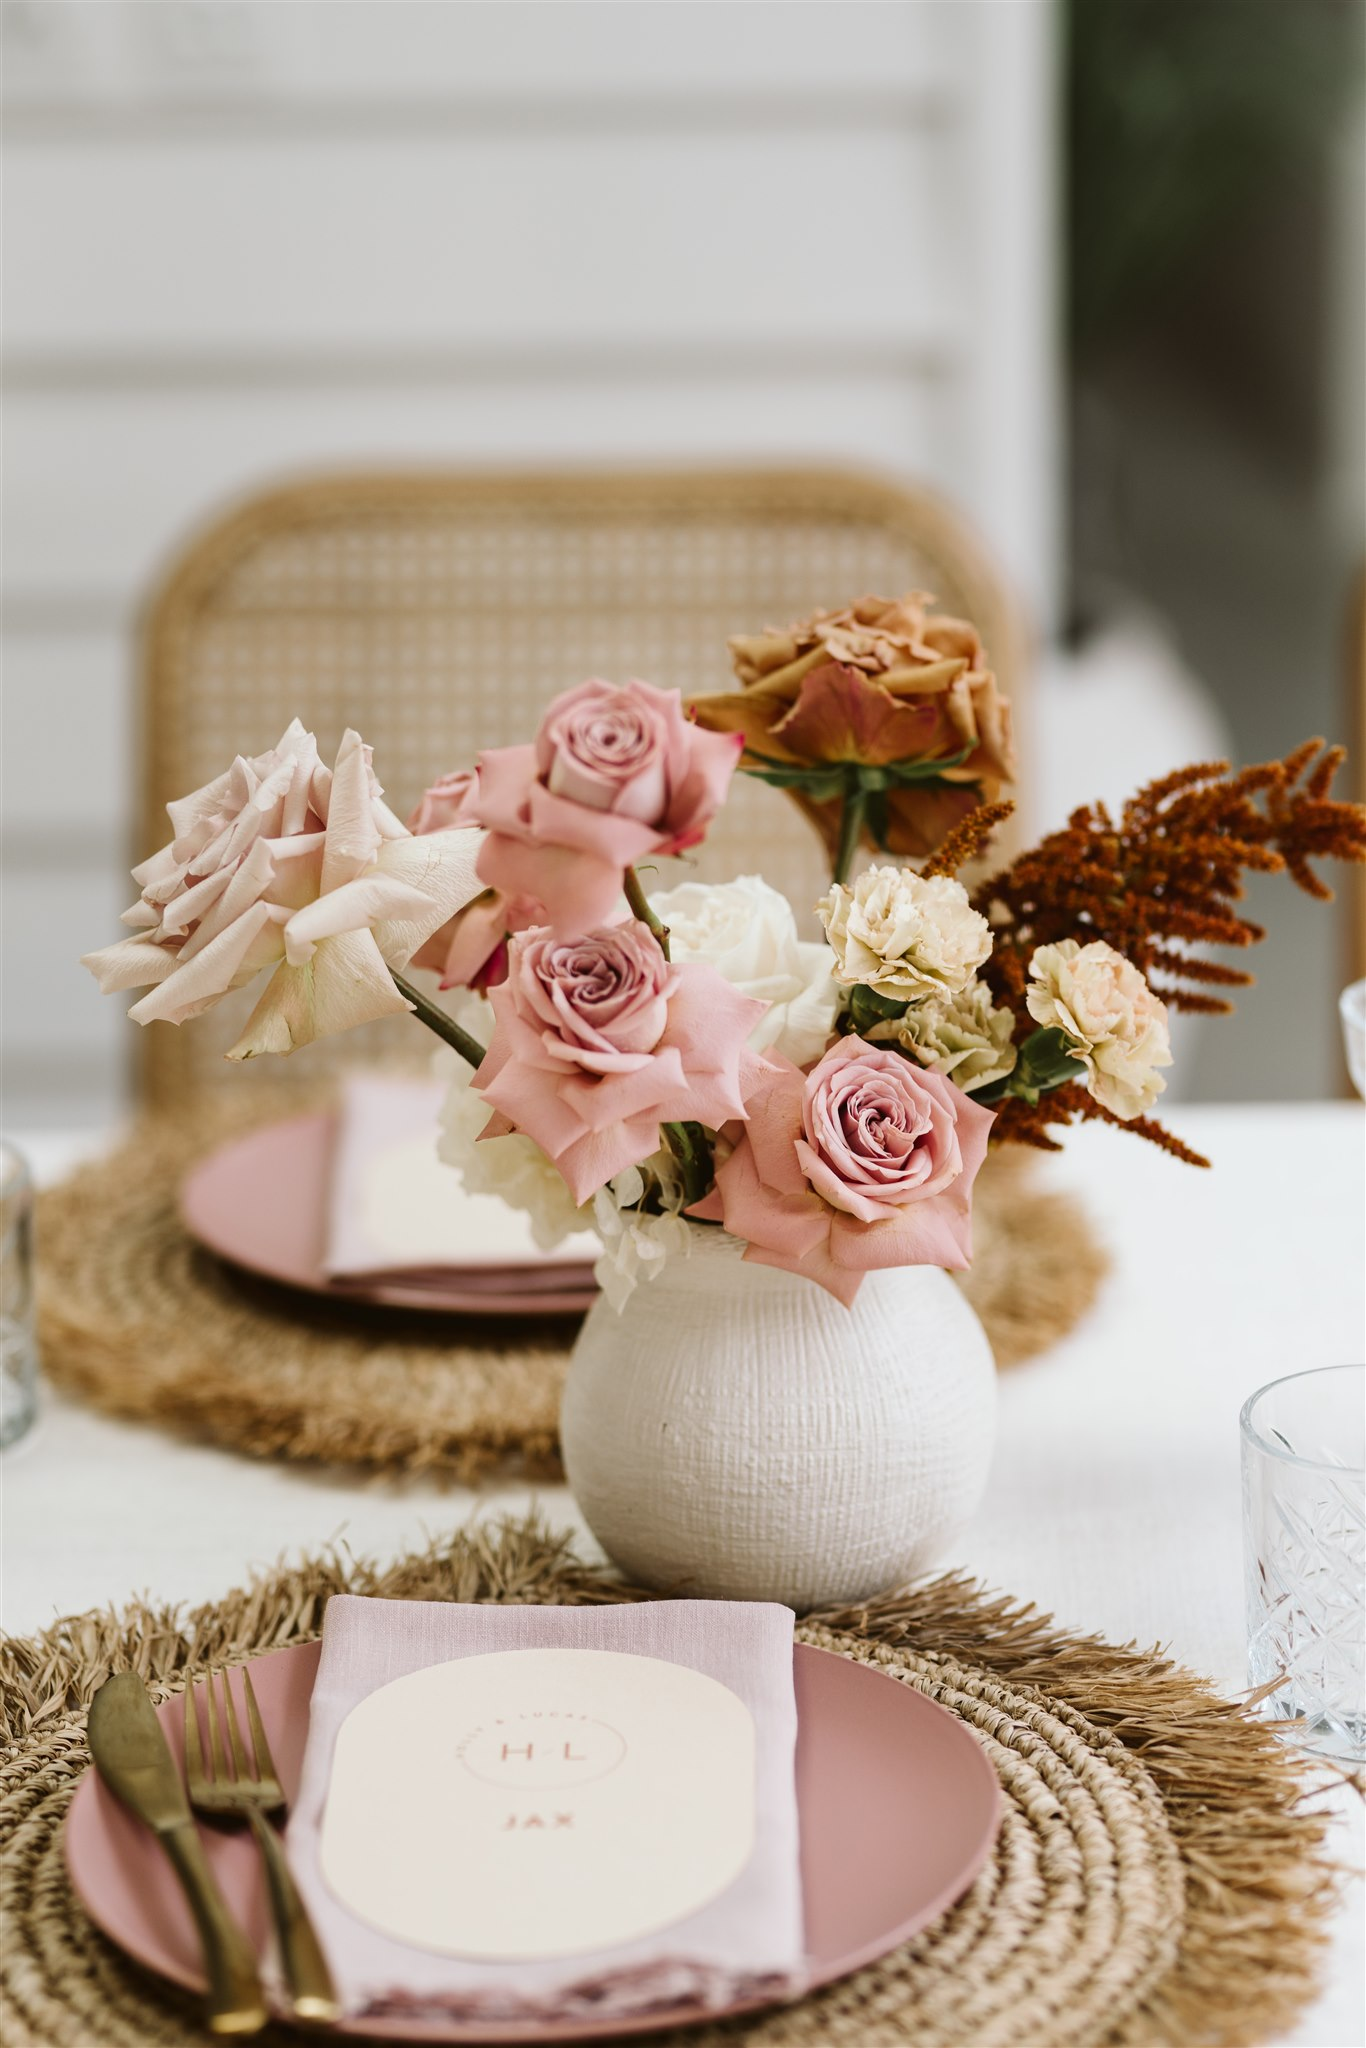 Styled decor and fashion shoot